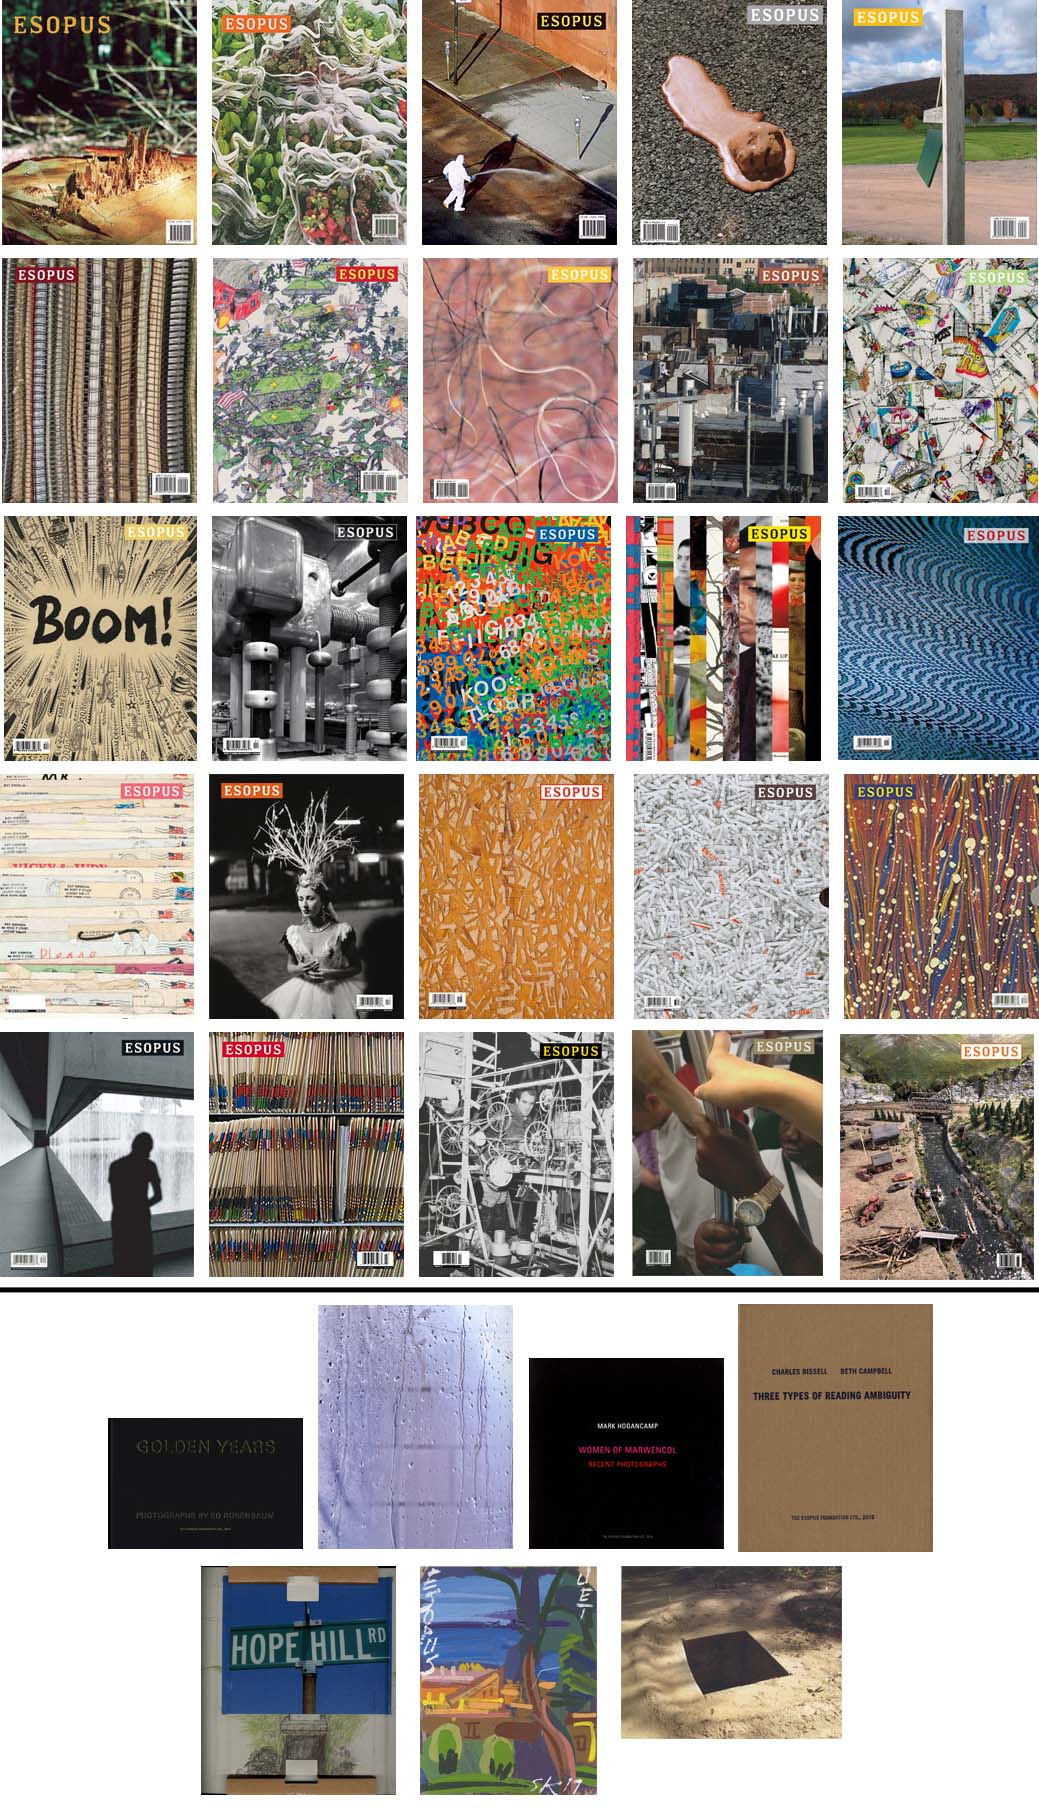 Esopus 1-23 (Complete Collection, including 5 Limited Edition artworks).